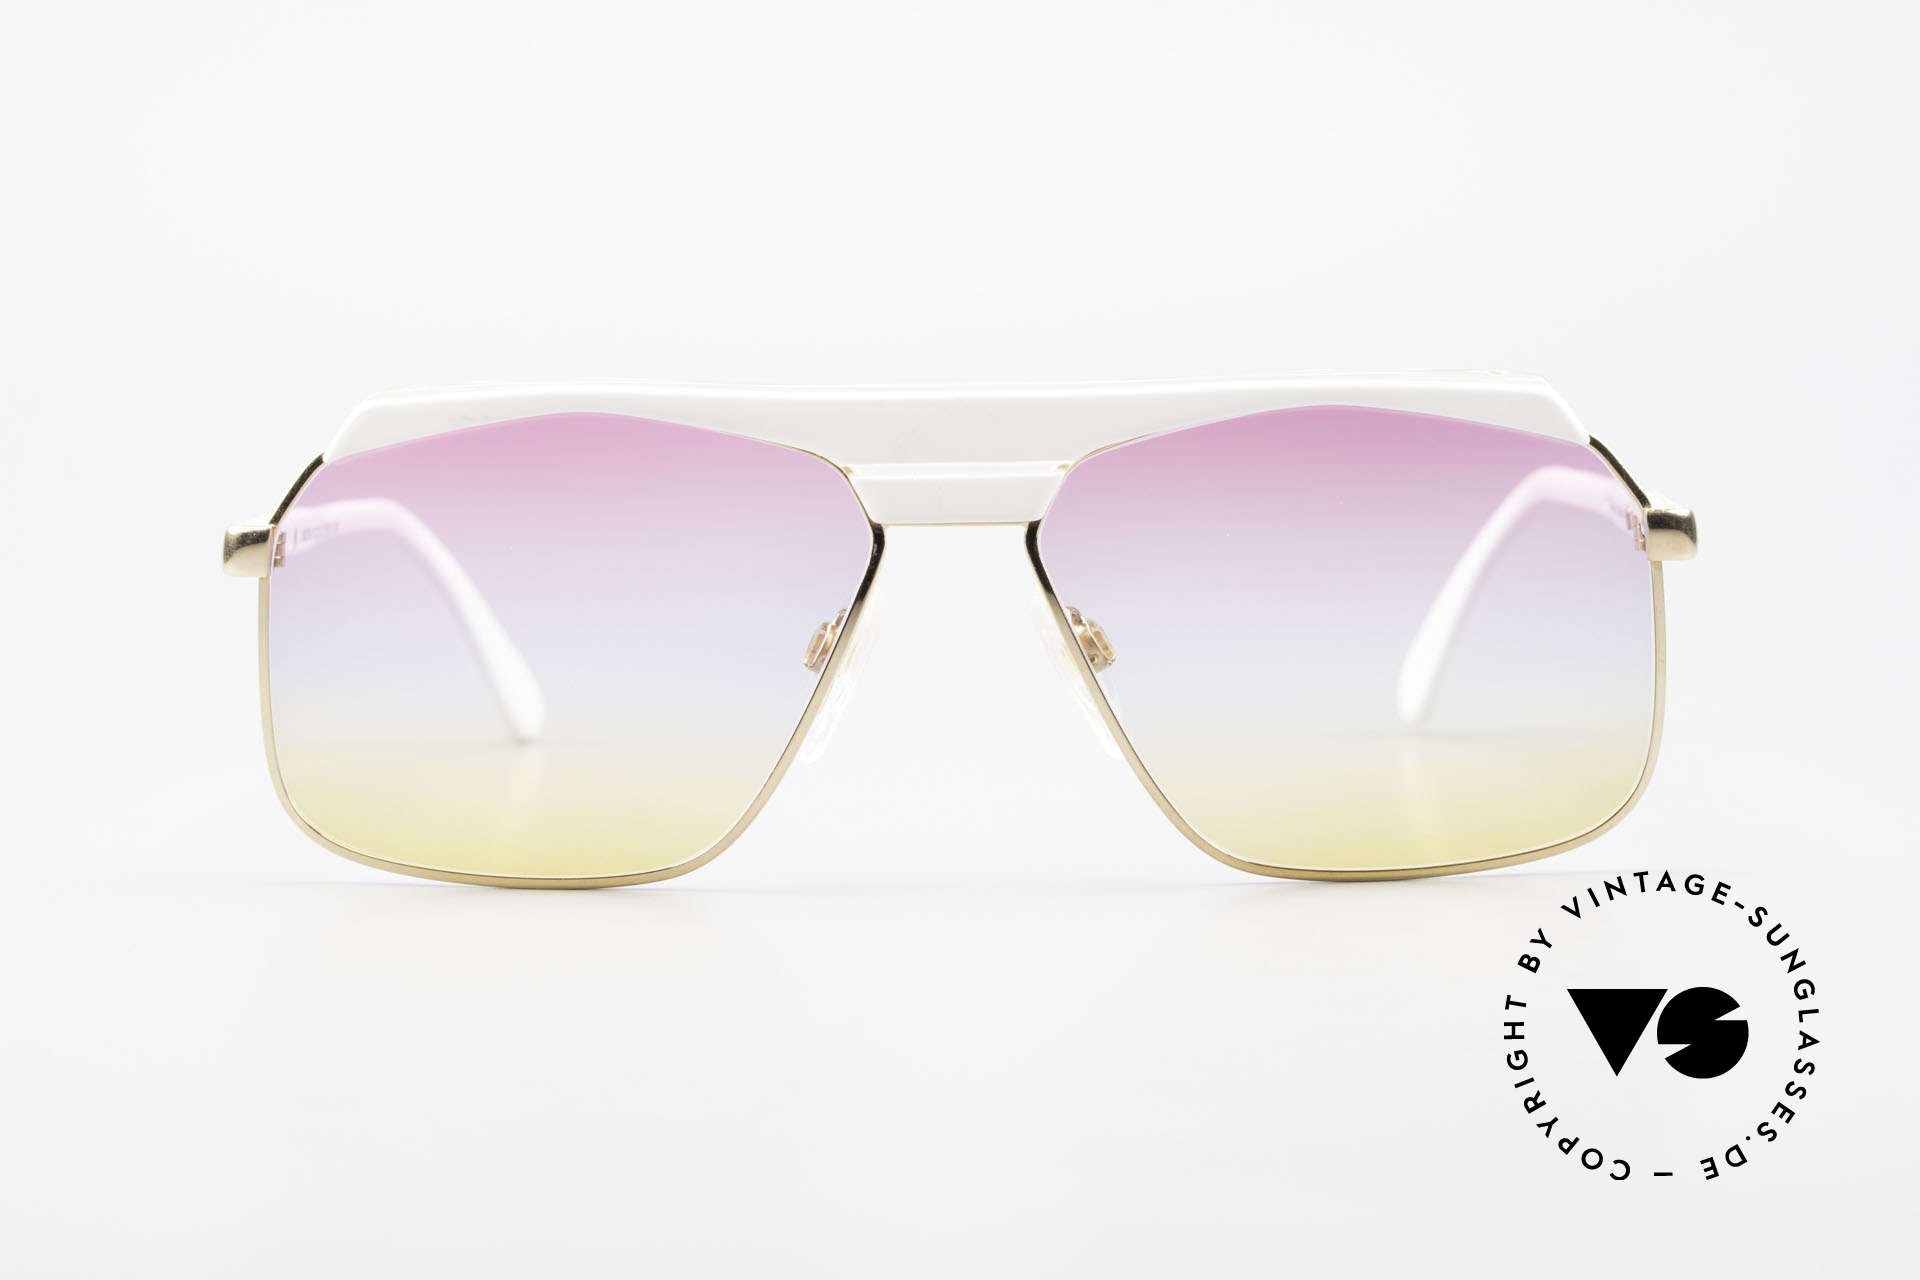 Cazal 730 80's Shades With Sunrise Lenses, unique design by CAri ZALloni - just 'old school', Made for Men and Women